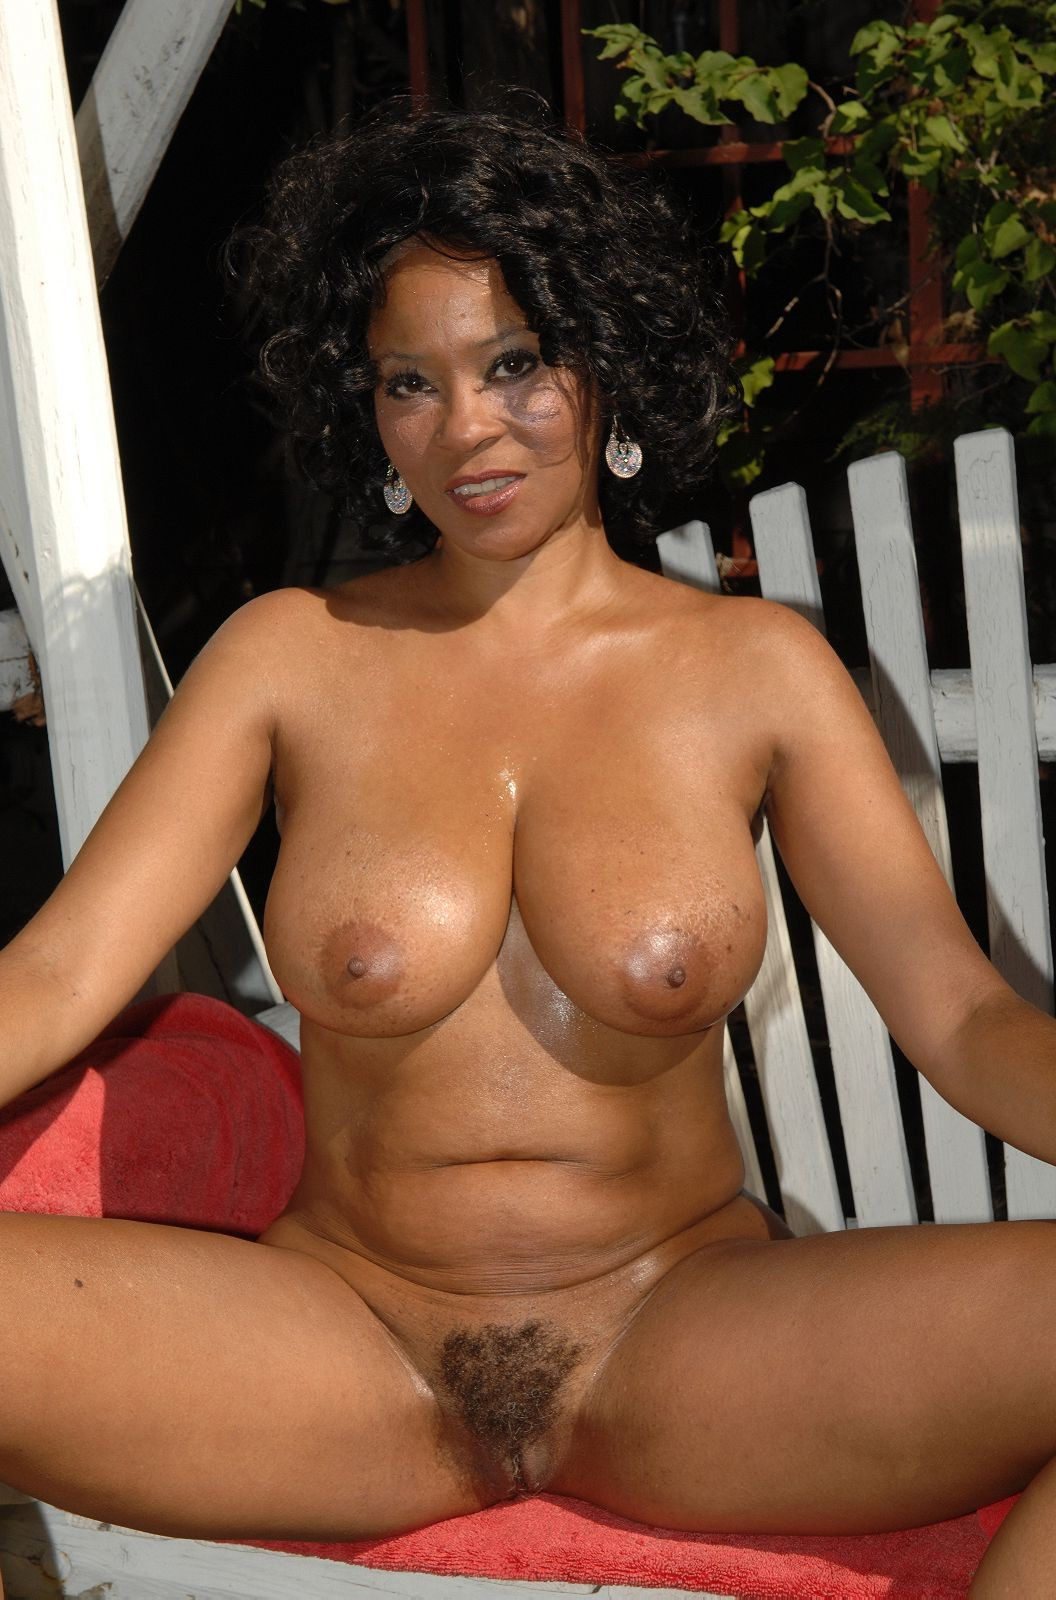 Archive Of Old Women Amateur Black Women Mix Pics-2254